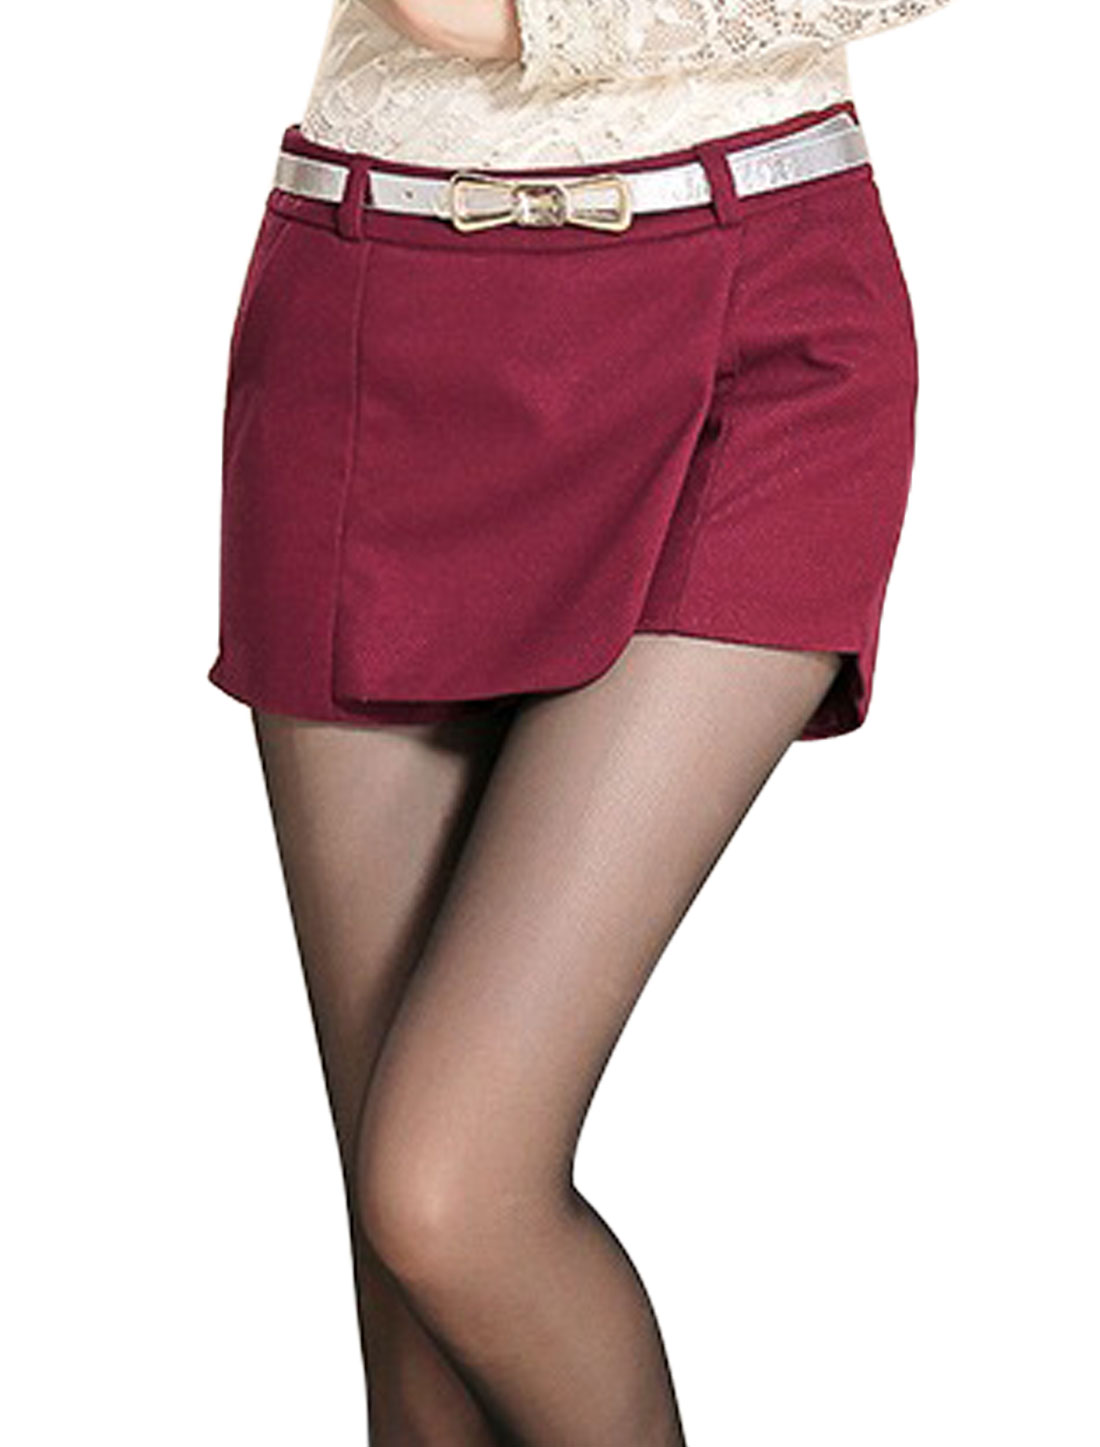 Women Fashion Style Hidden Zipper Side Leisure Shorts Burgundy M